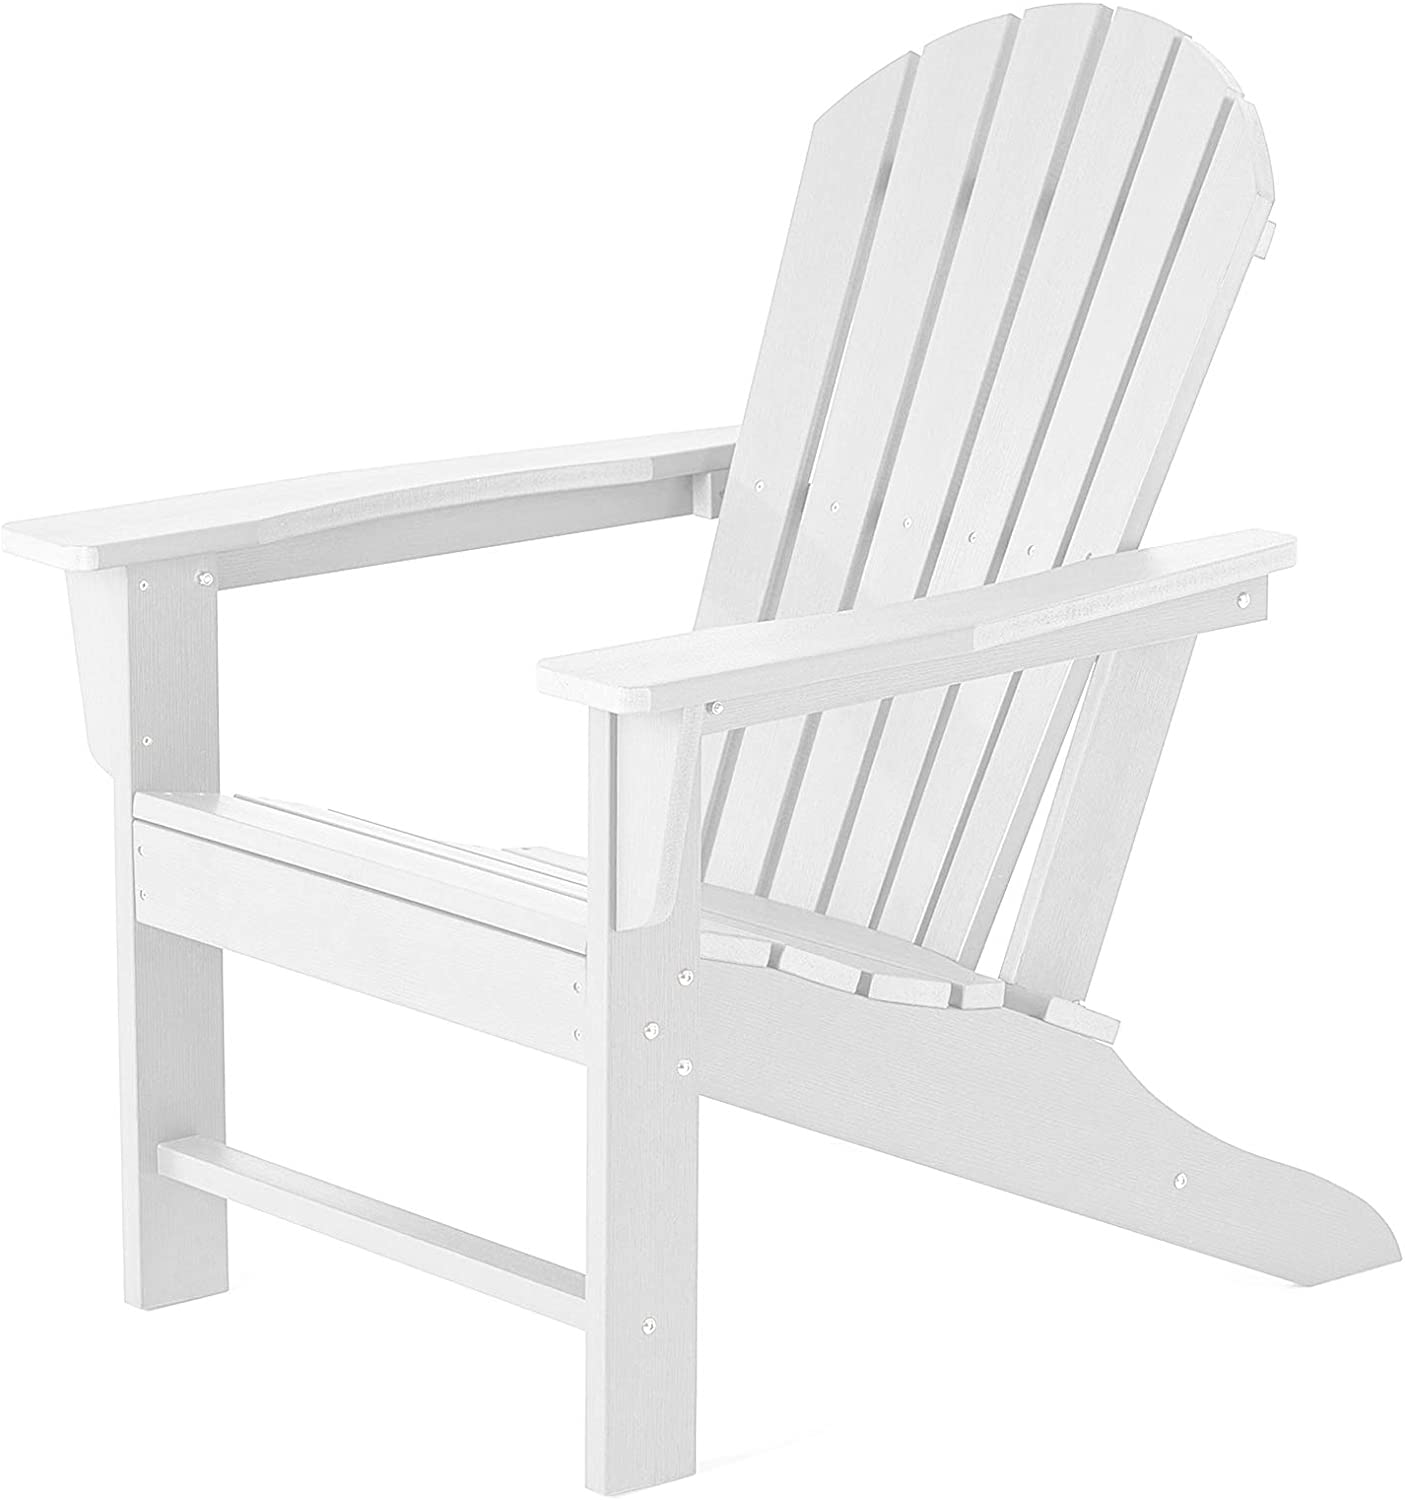 SERWALL Adirondack Chair | Adult-Size, Weather Resistant for Patio Deck Garden, Backyard & Lawn Furniture | Easy Maintenance & Classic Adirondack Chair Design (White)